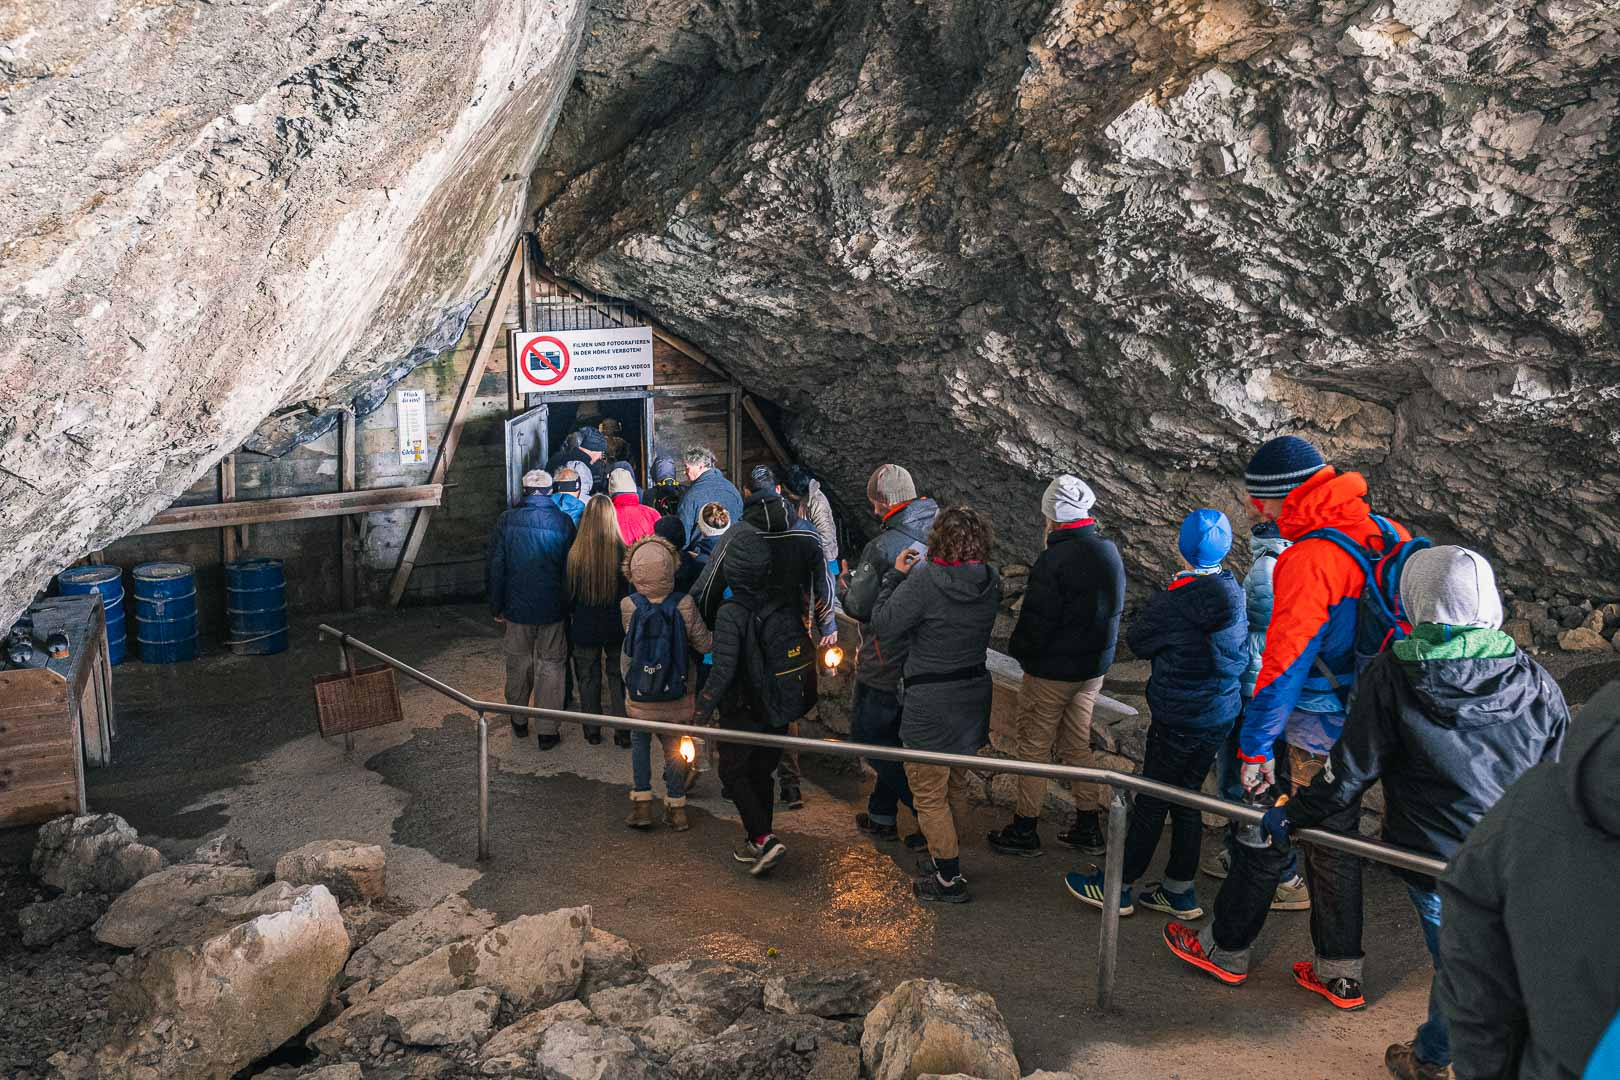 The cue at the entrance to the Ice caves